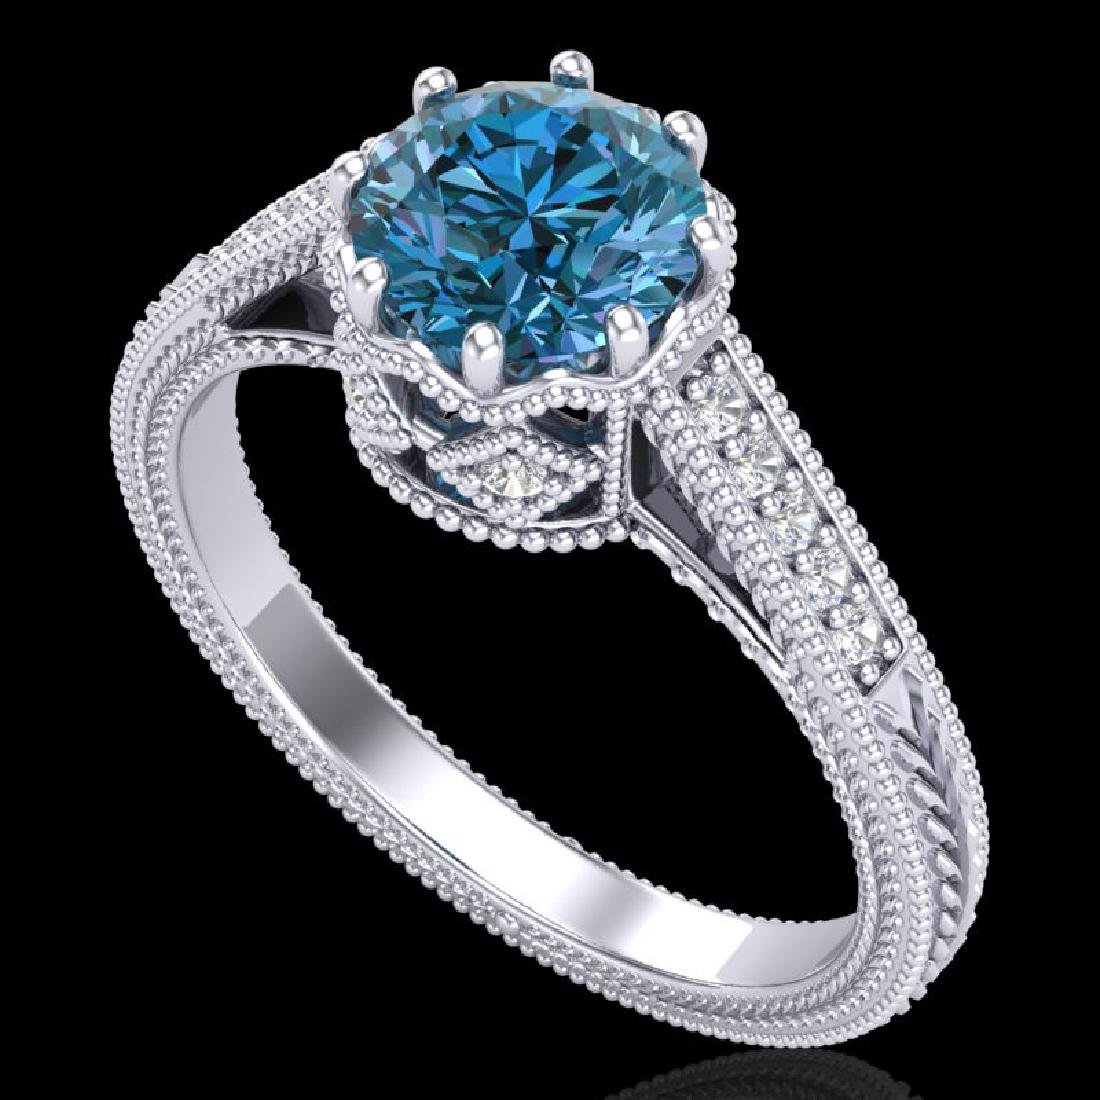 1.25 CTW Fancy Intense Blue Diamond Solitaire Art Deco